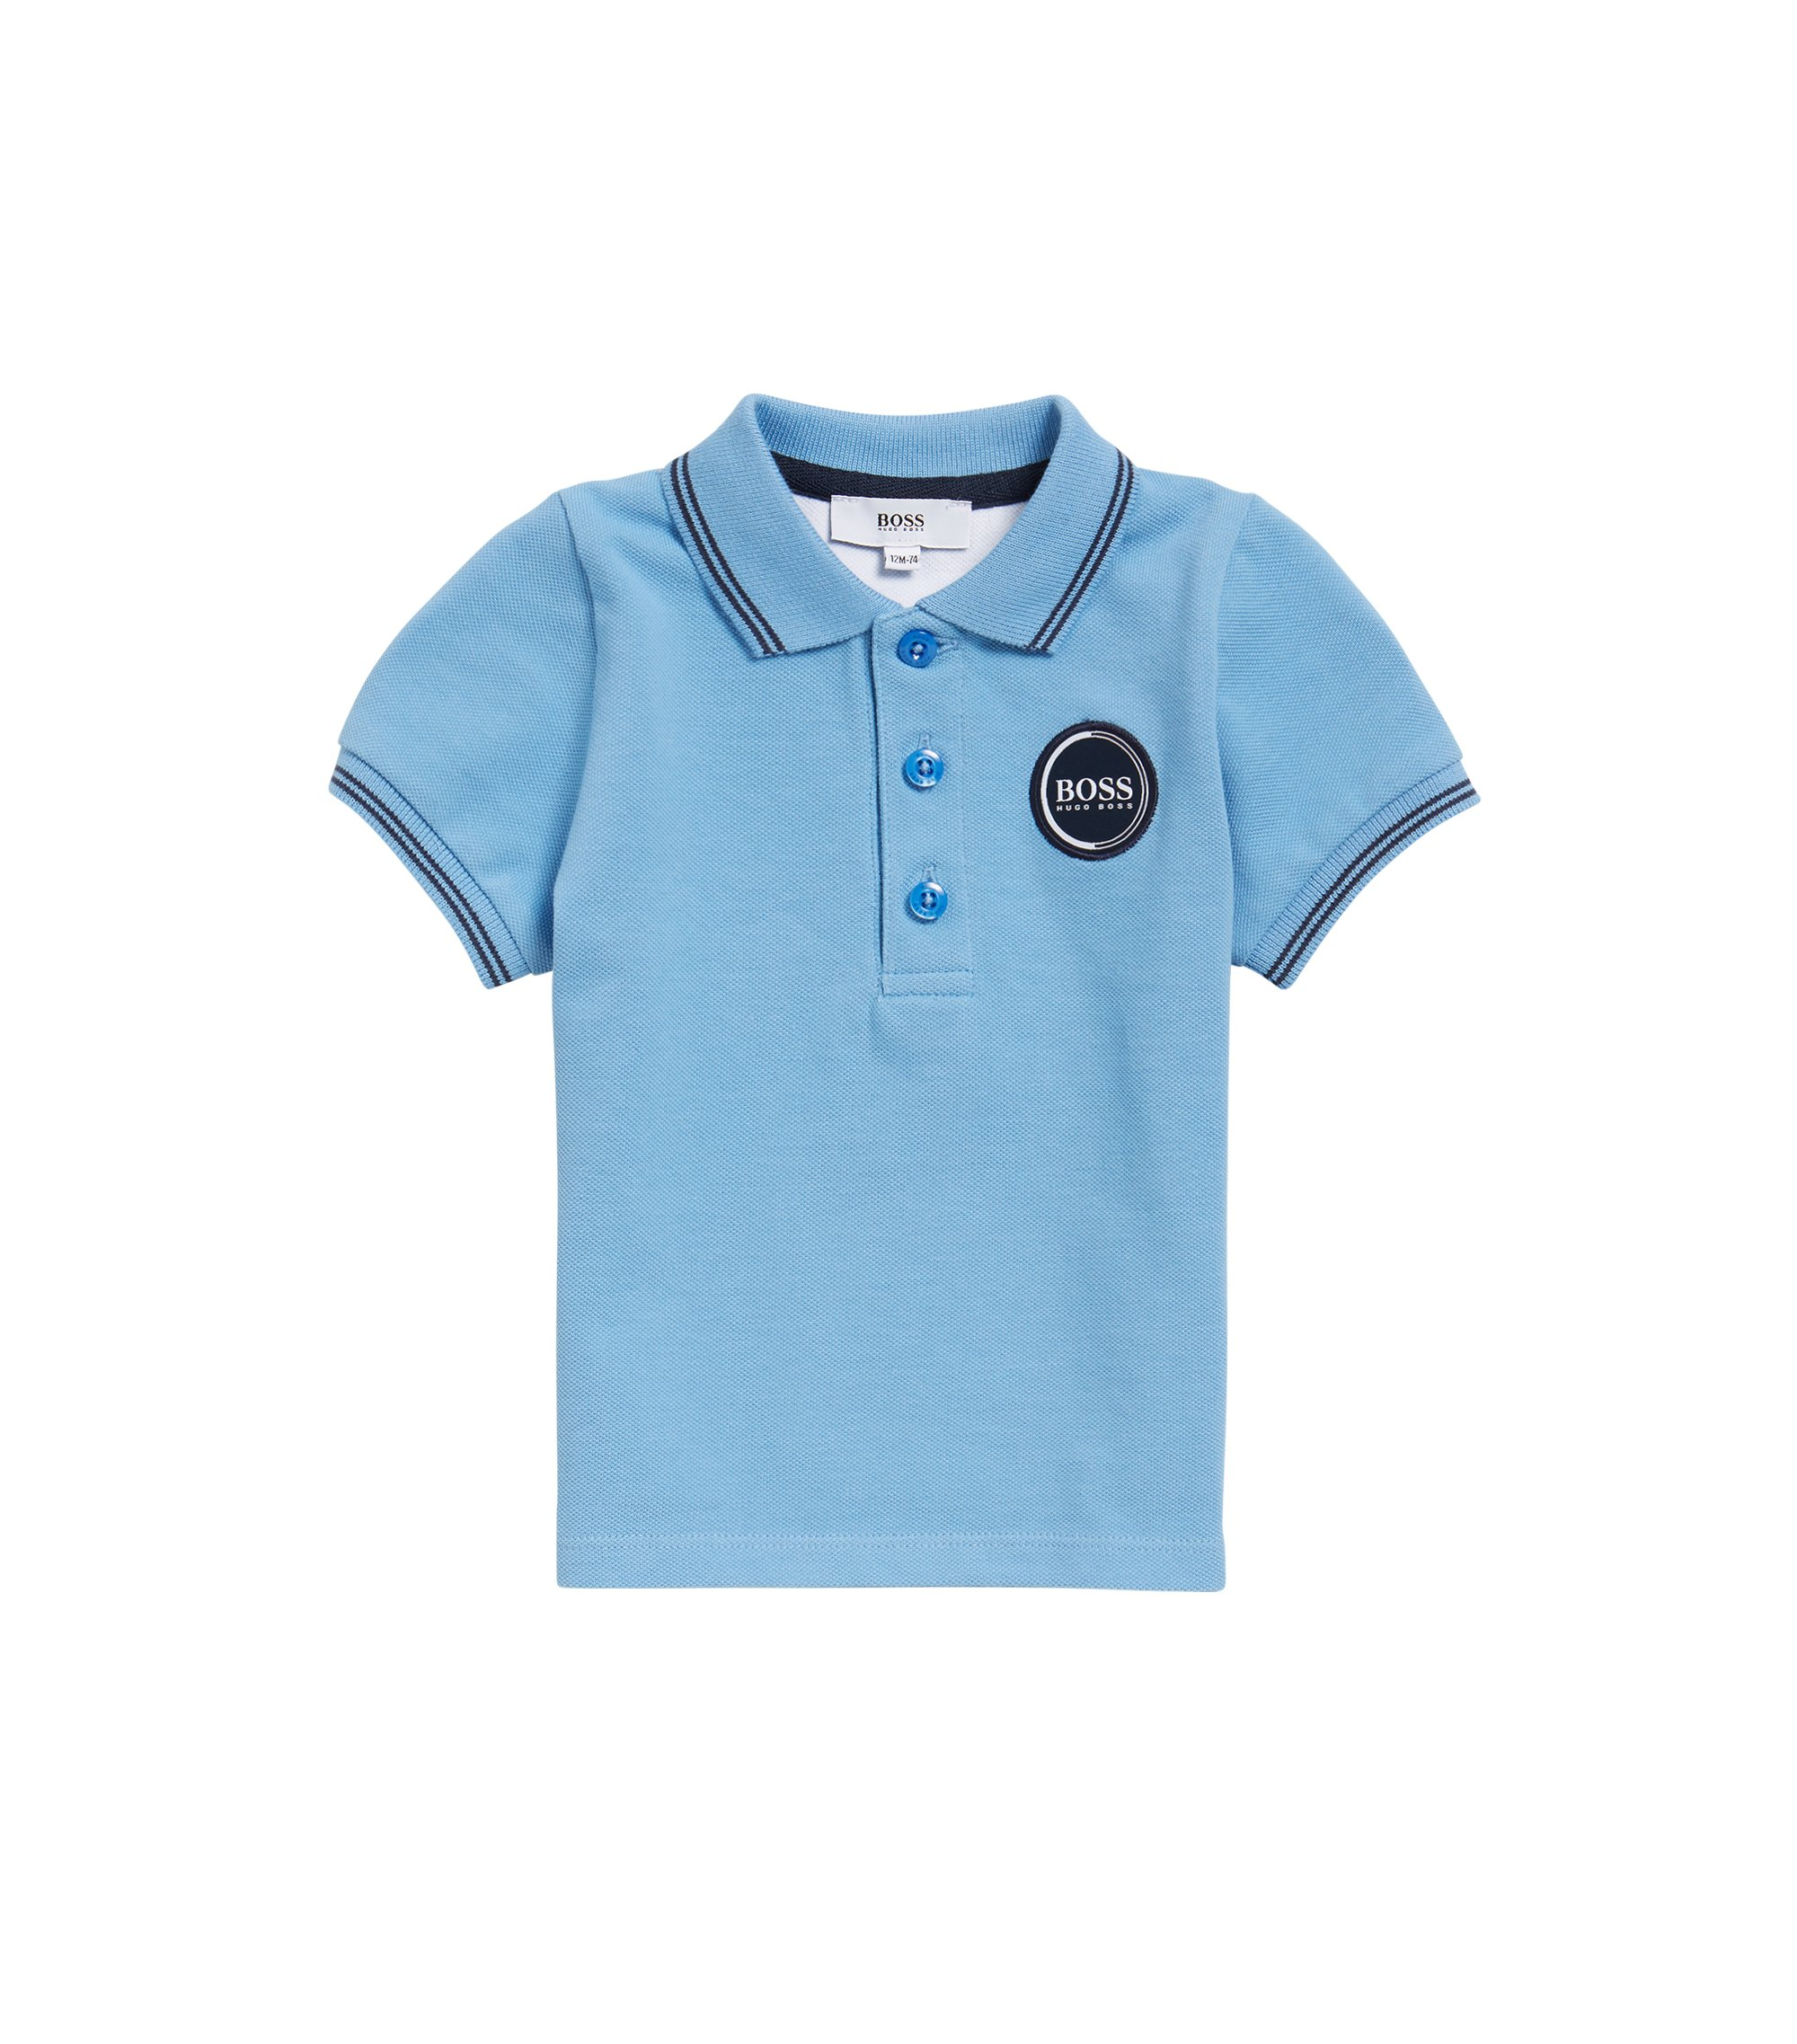 Kids' polo shirt in cotton pique with logo badge, Light Blue